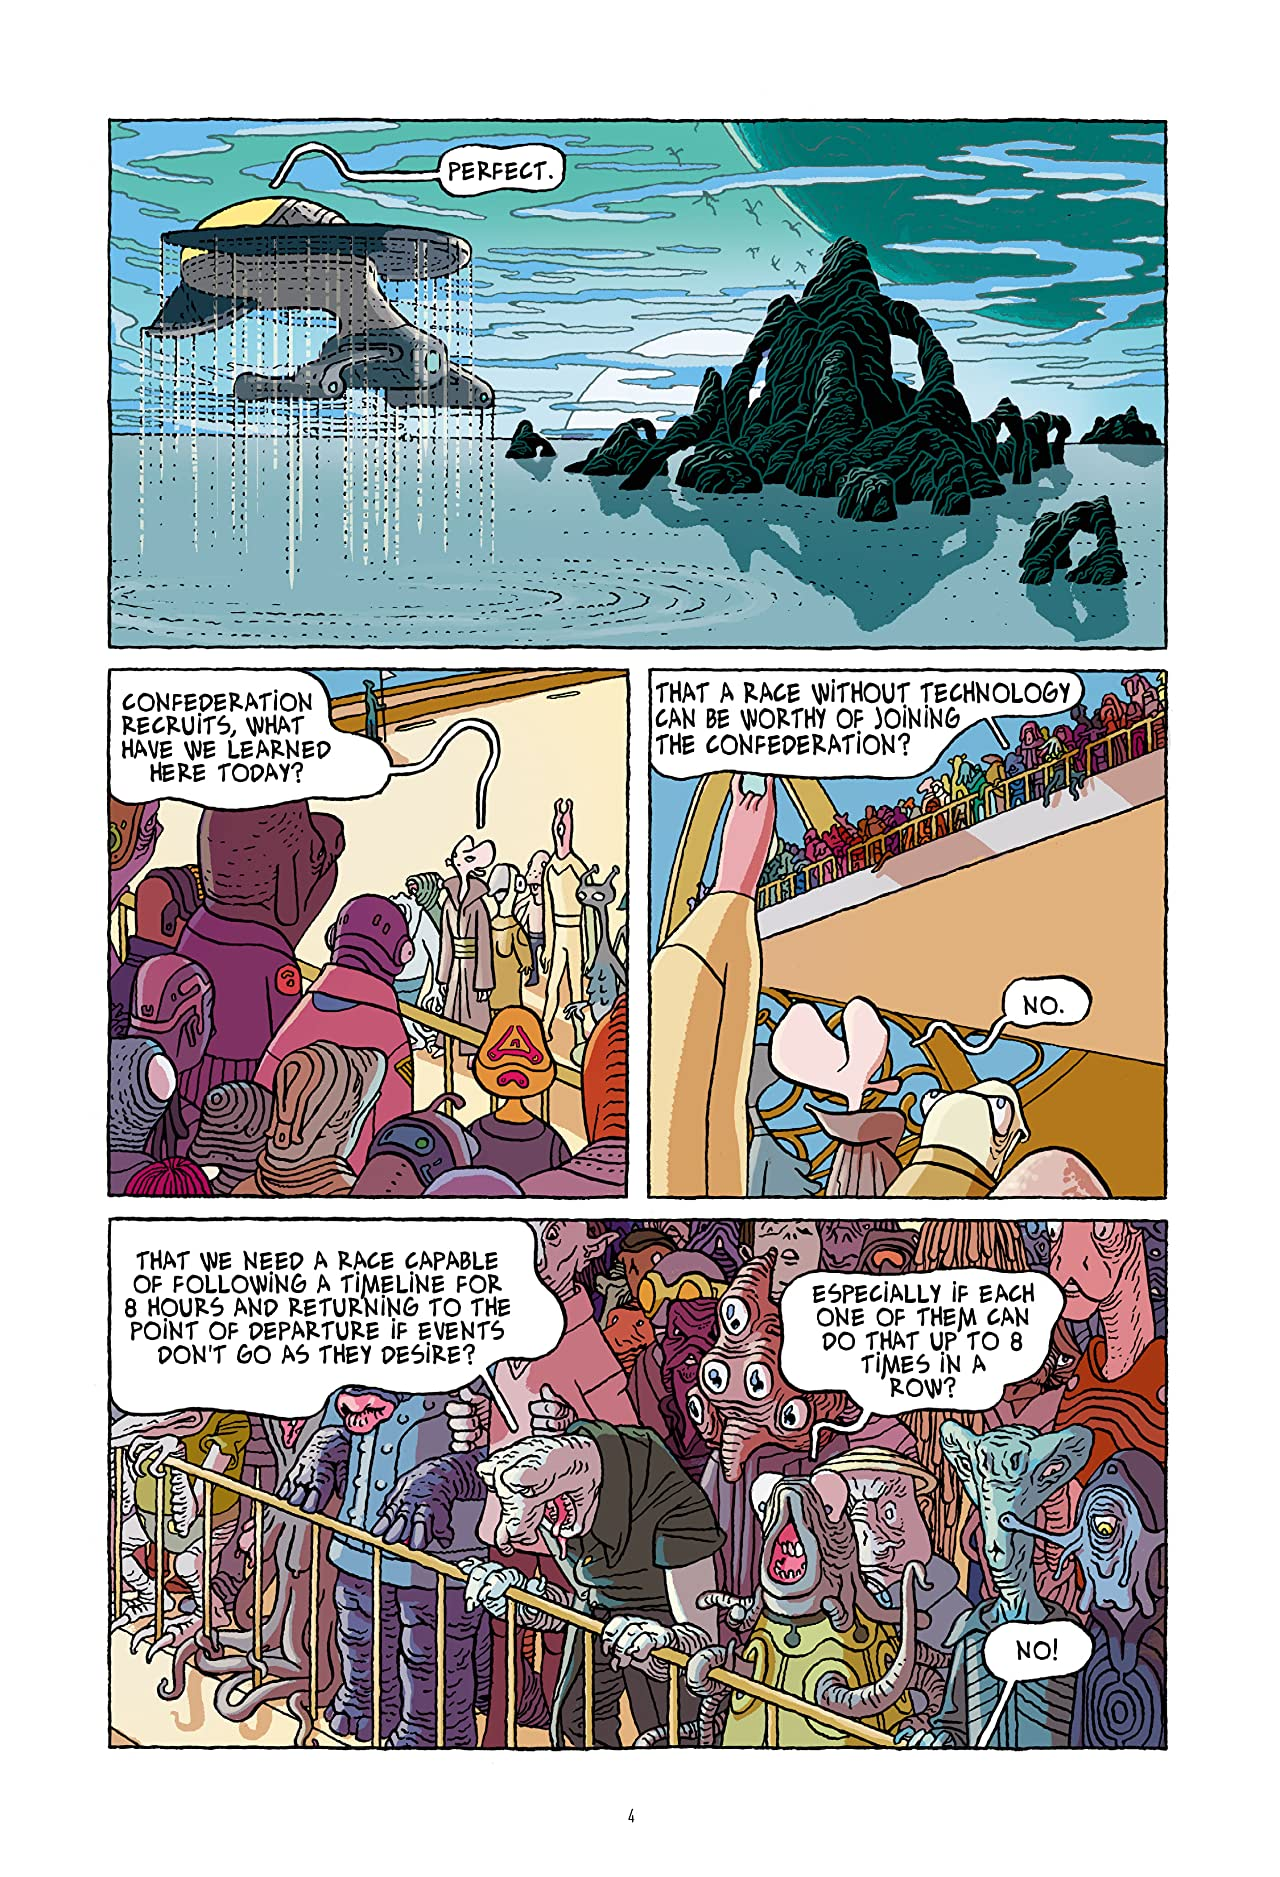 Infinity 8 #22: Until the End